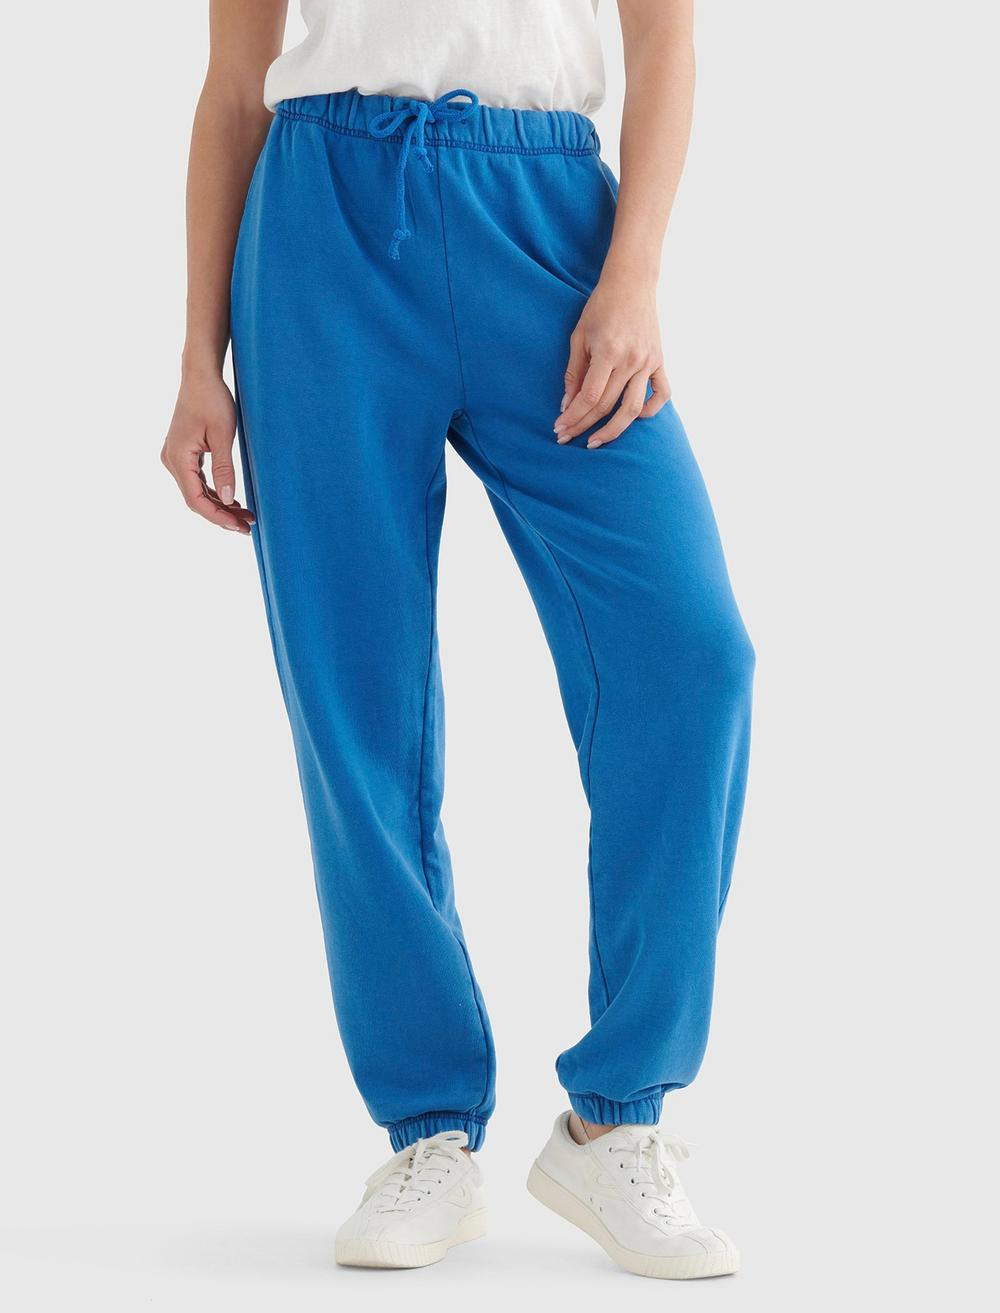 CHILL AT HOME FLEECE JOGGER, image 3